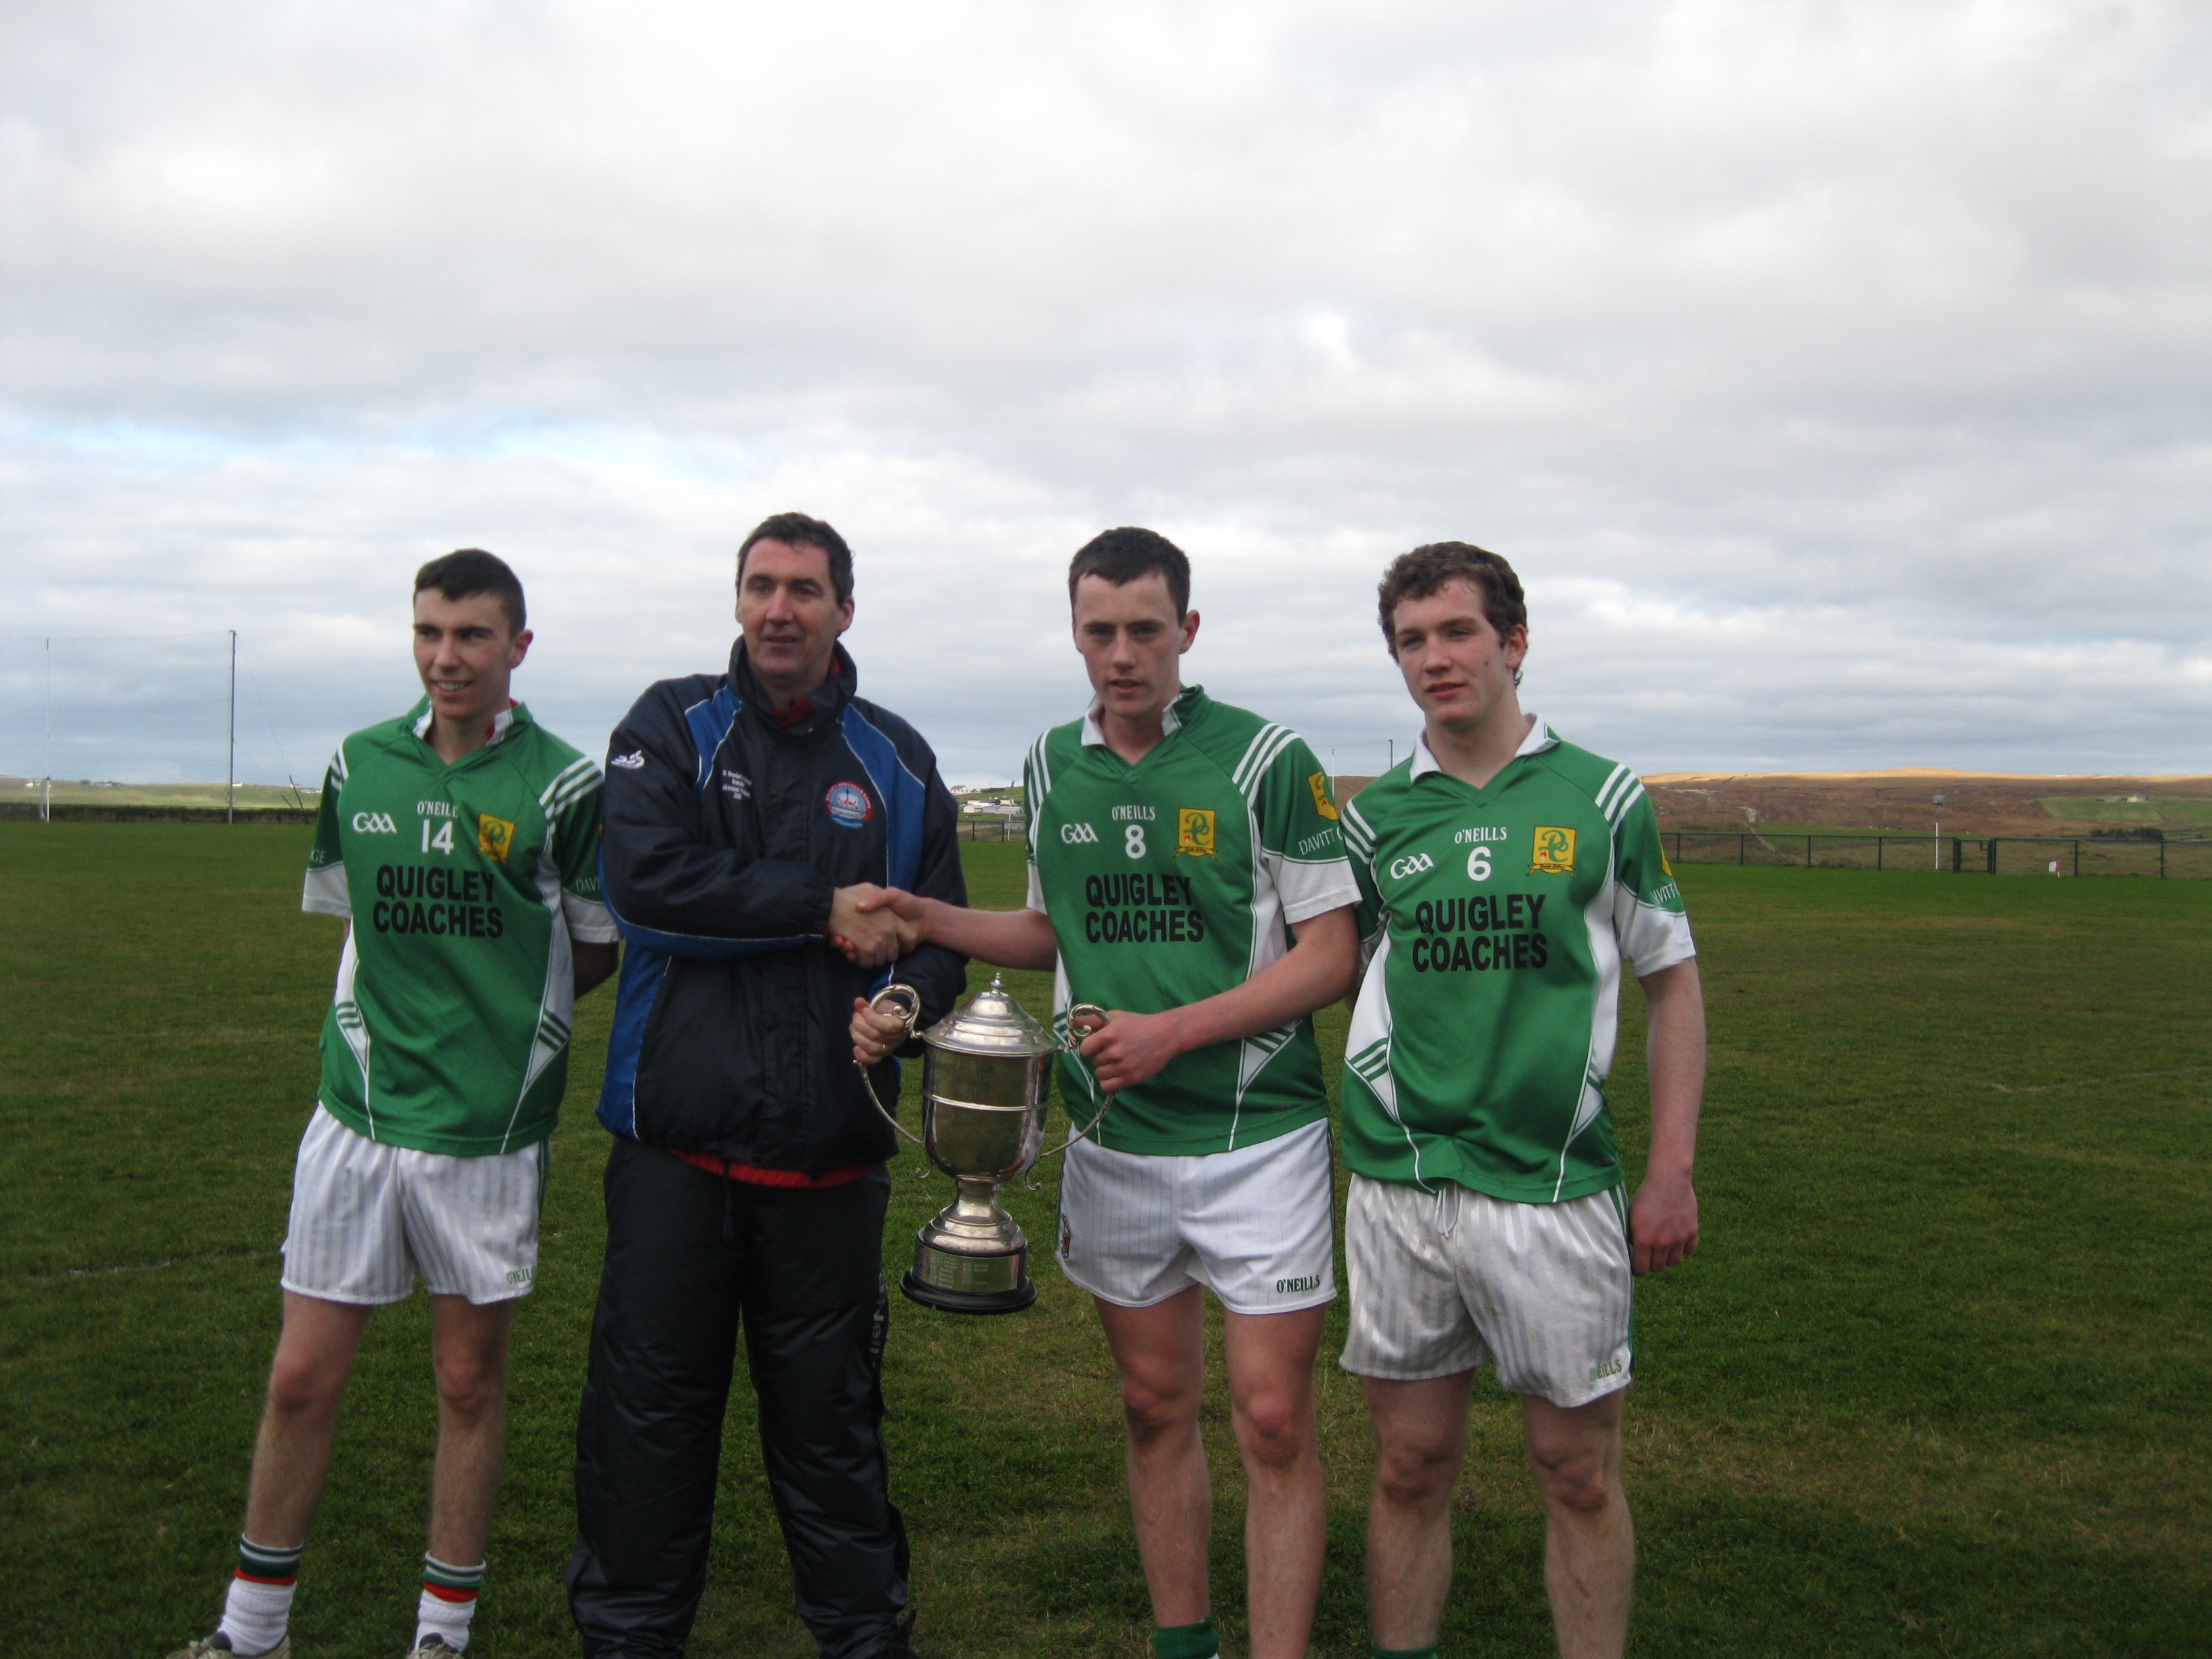 Diarmuid O'Connor Senior Captain - County Champions